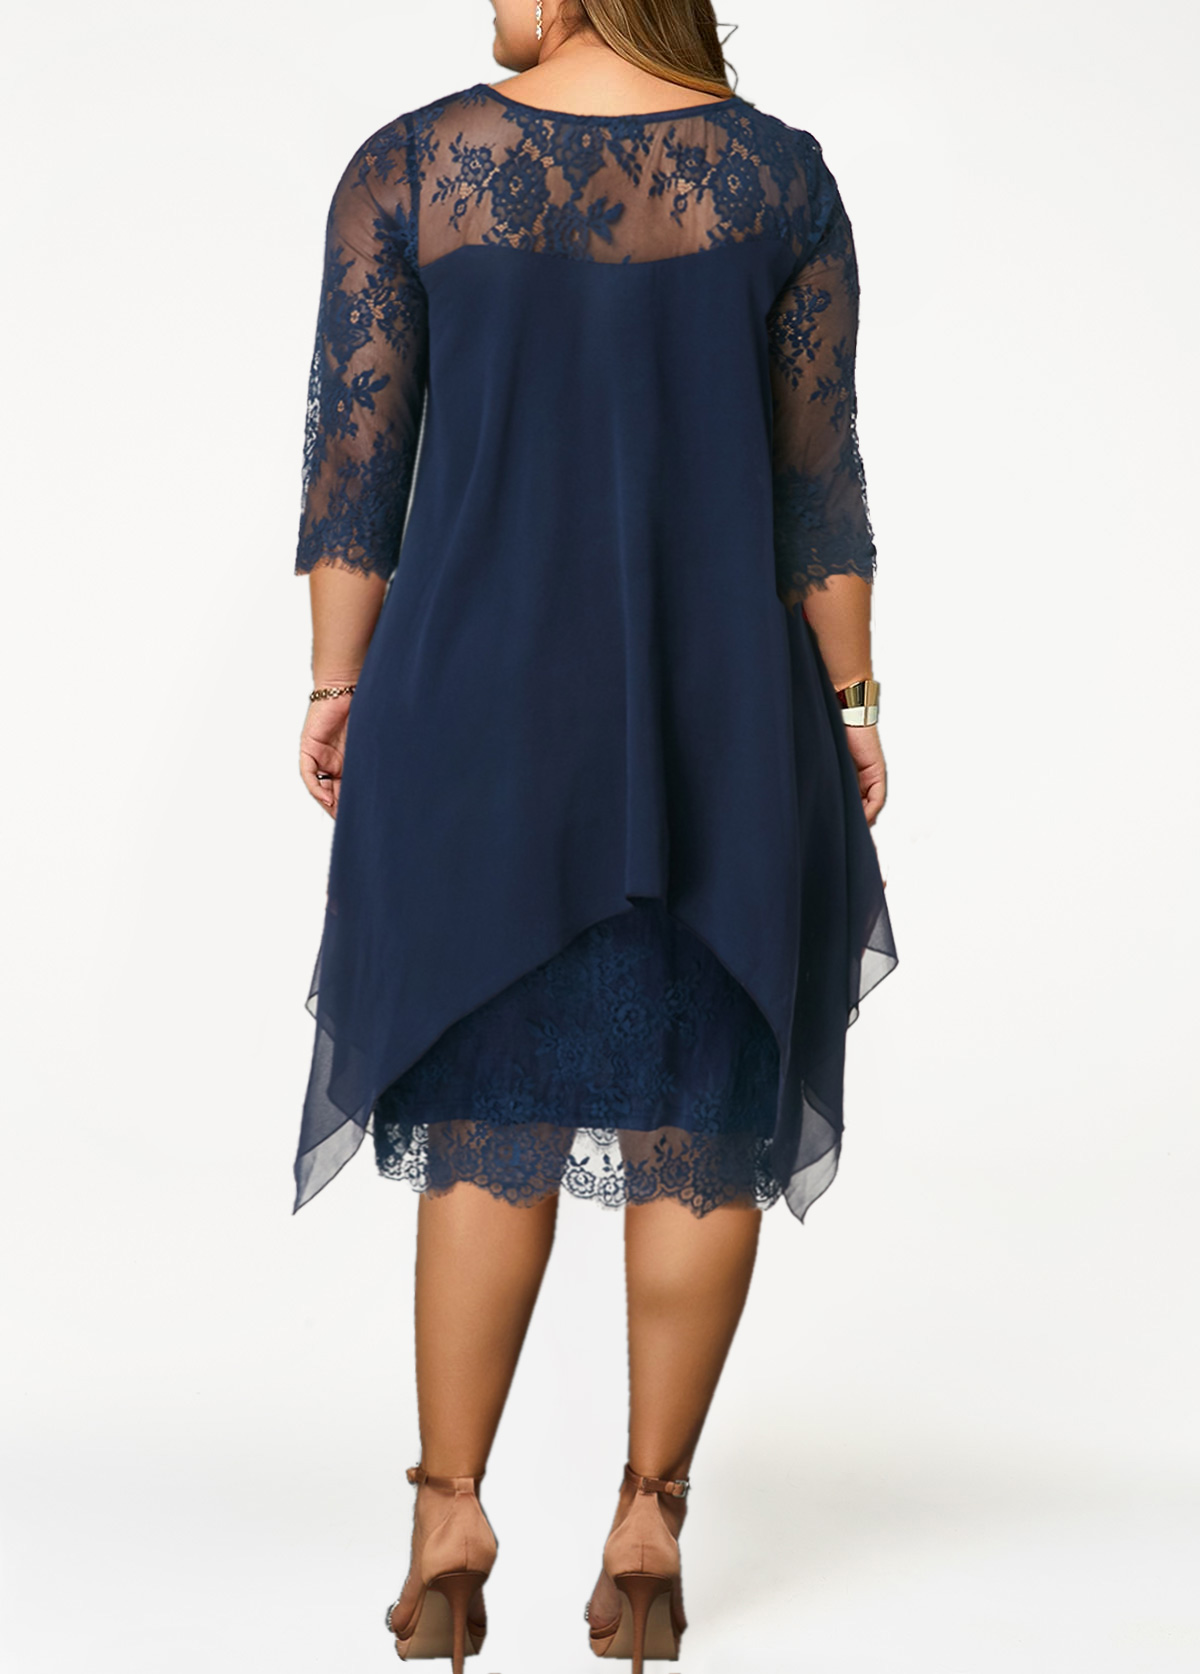 Plus Size Lace Patchwork Overlay Navy Blue Dress